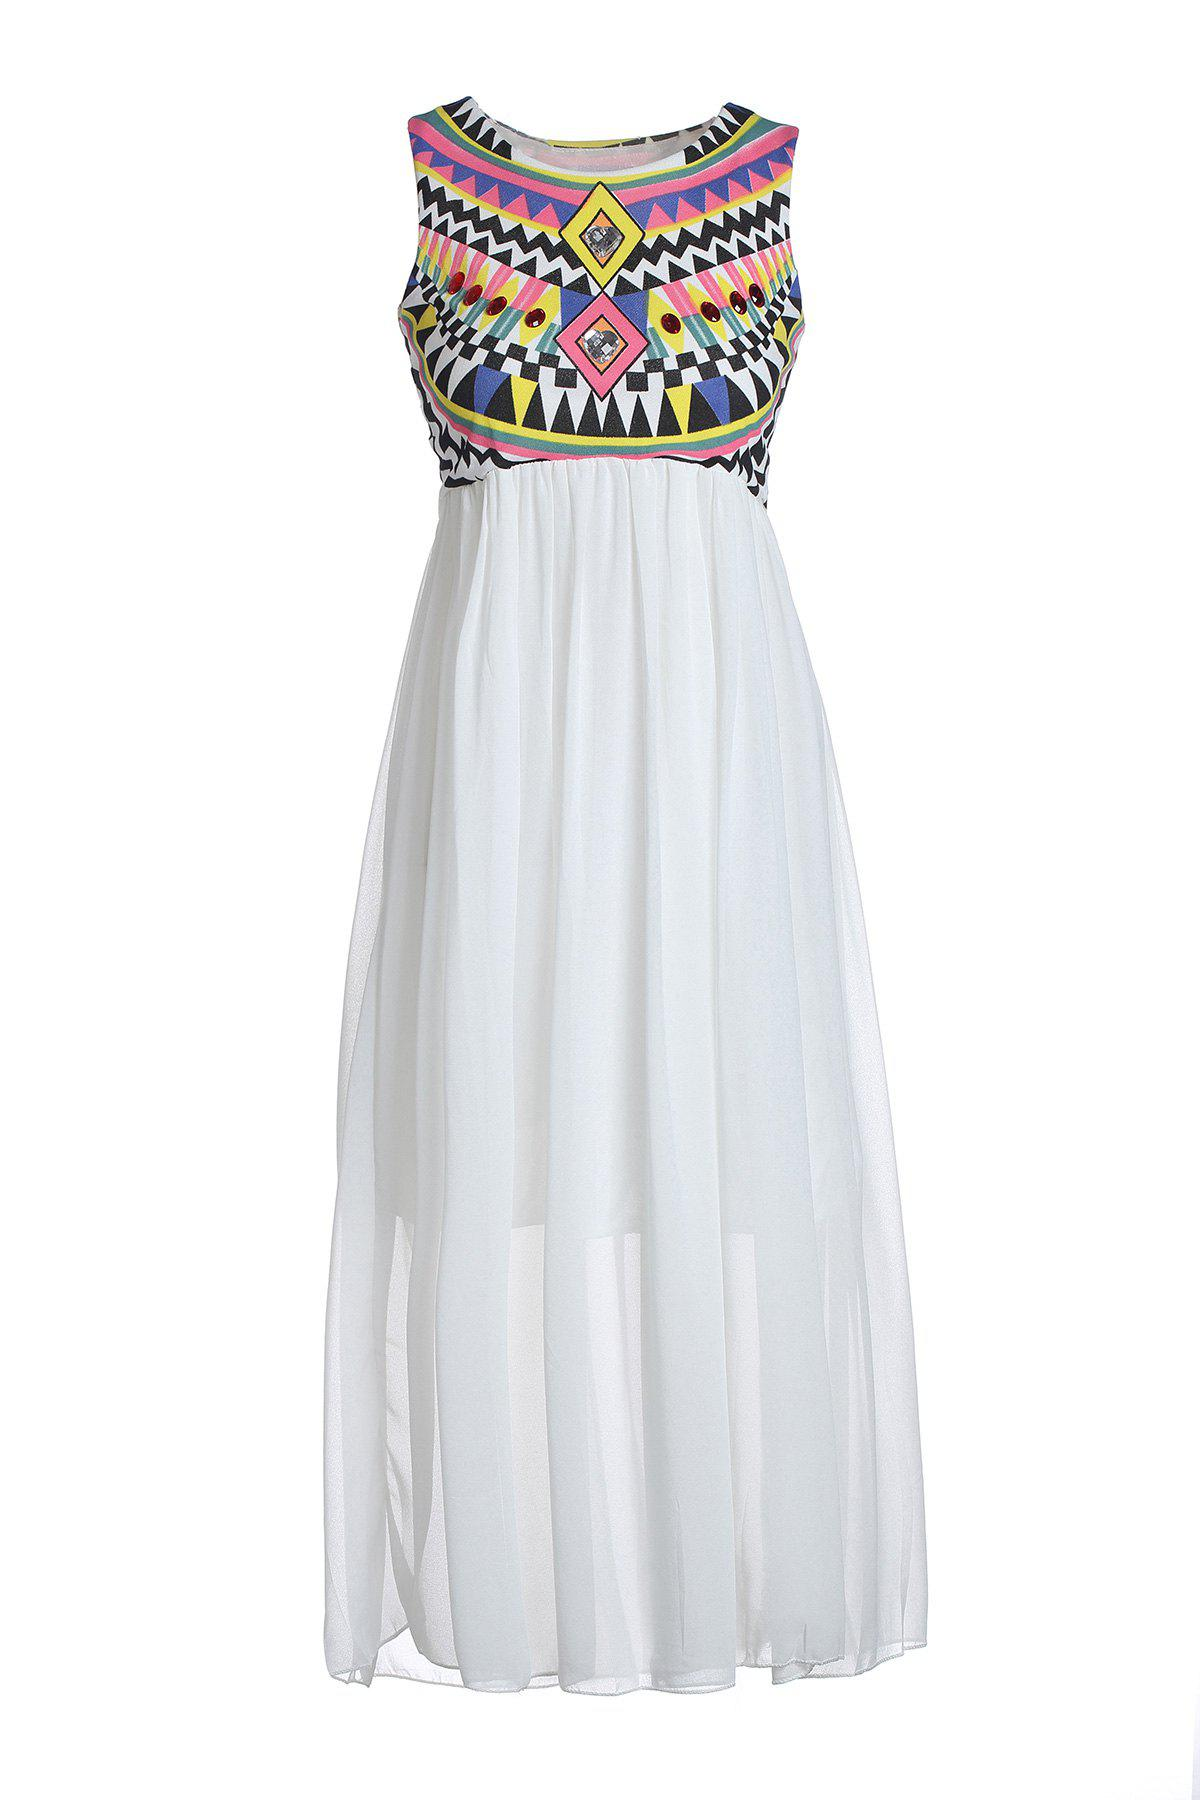 Special Print Bohemian Style Chiffon Ruffled Scoop Neck Sleeveless Women's Maxi Dress - WHITE ONE SIZE